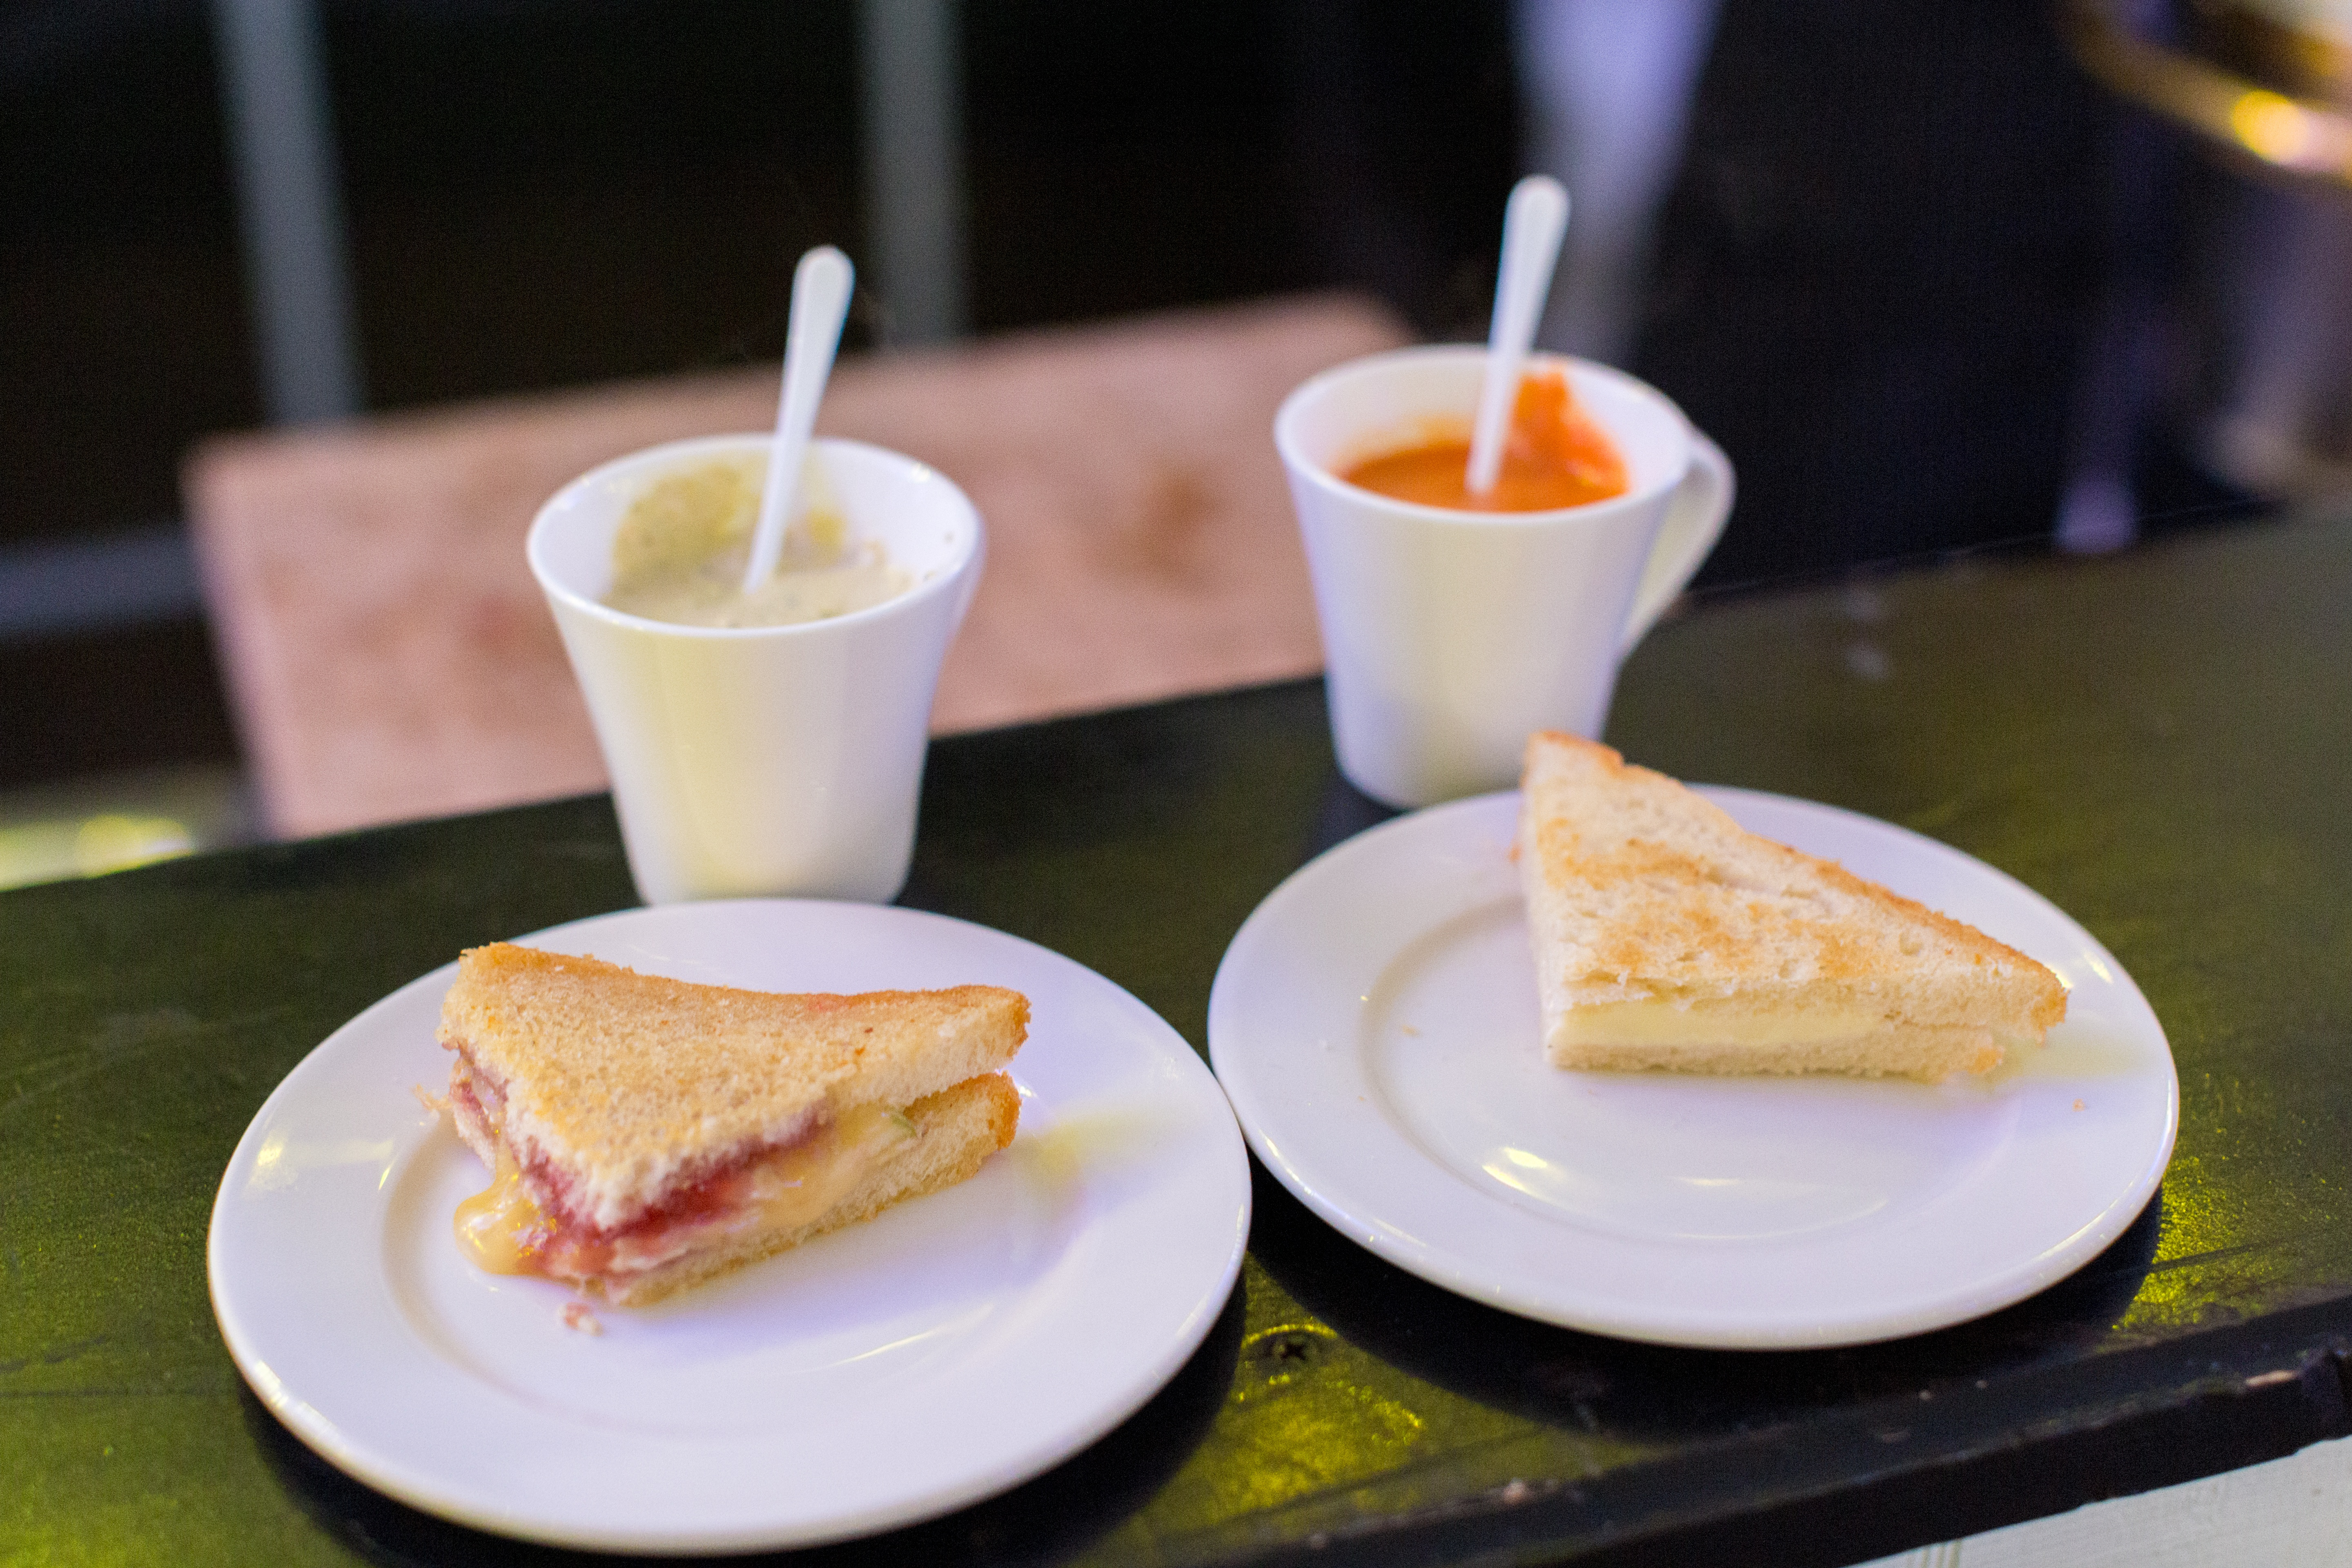 grilled cheese and soup wedding.jpg